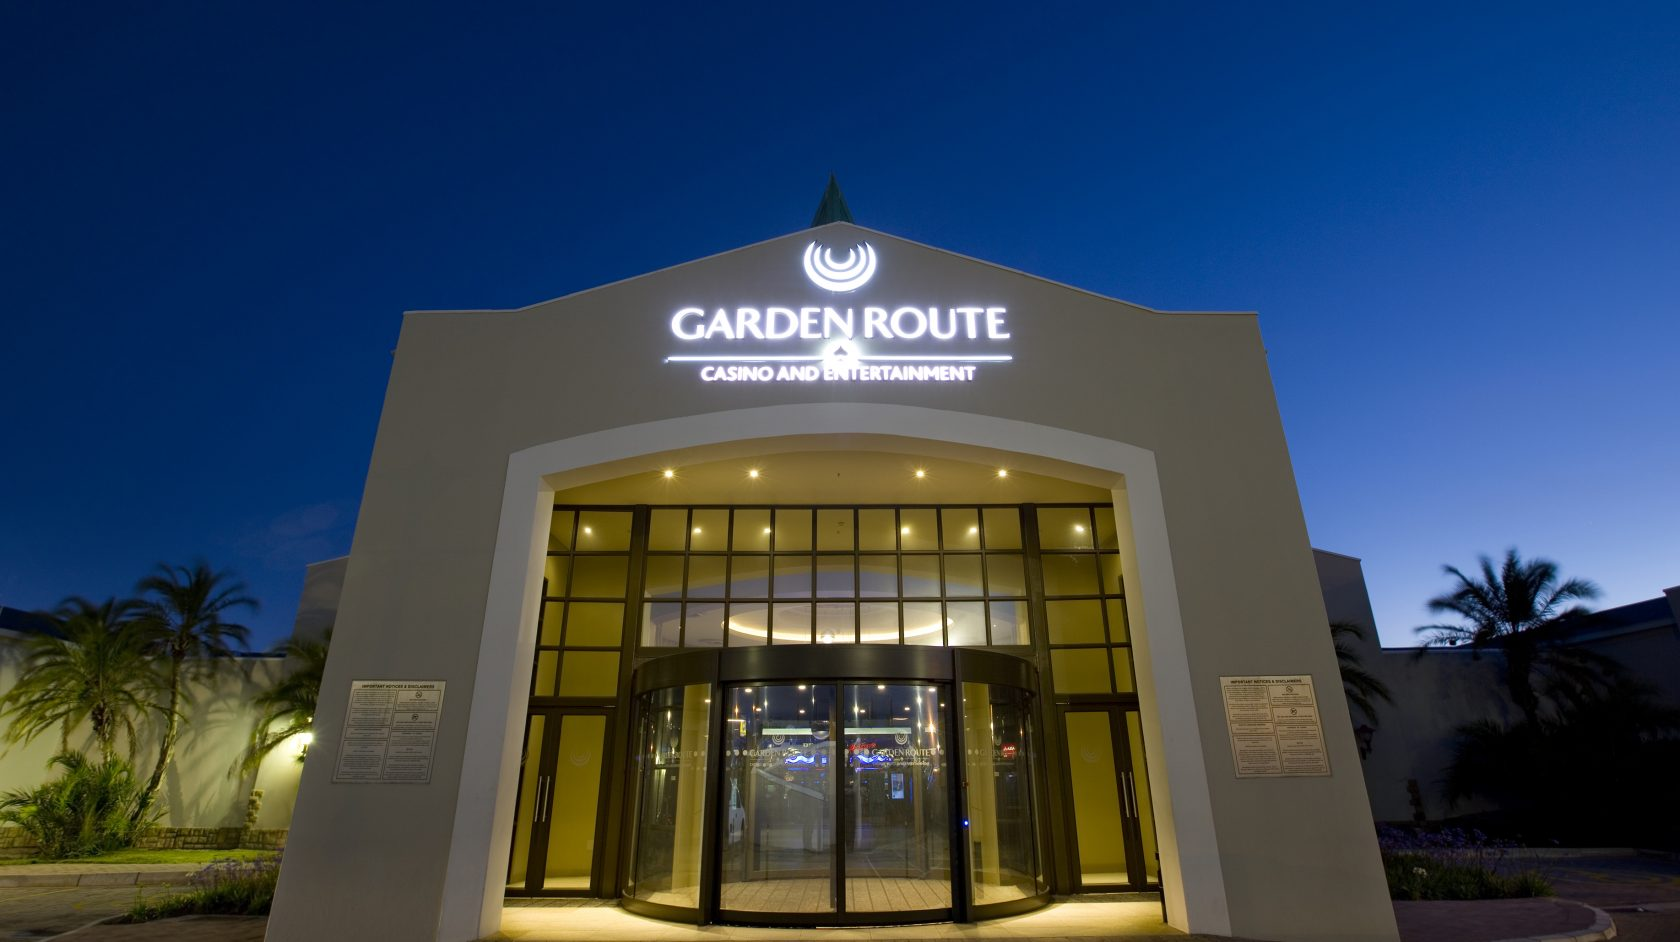 Garden Route Casino | Pinnacle Point, Mossel Bay